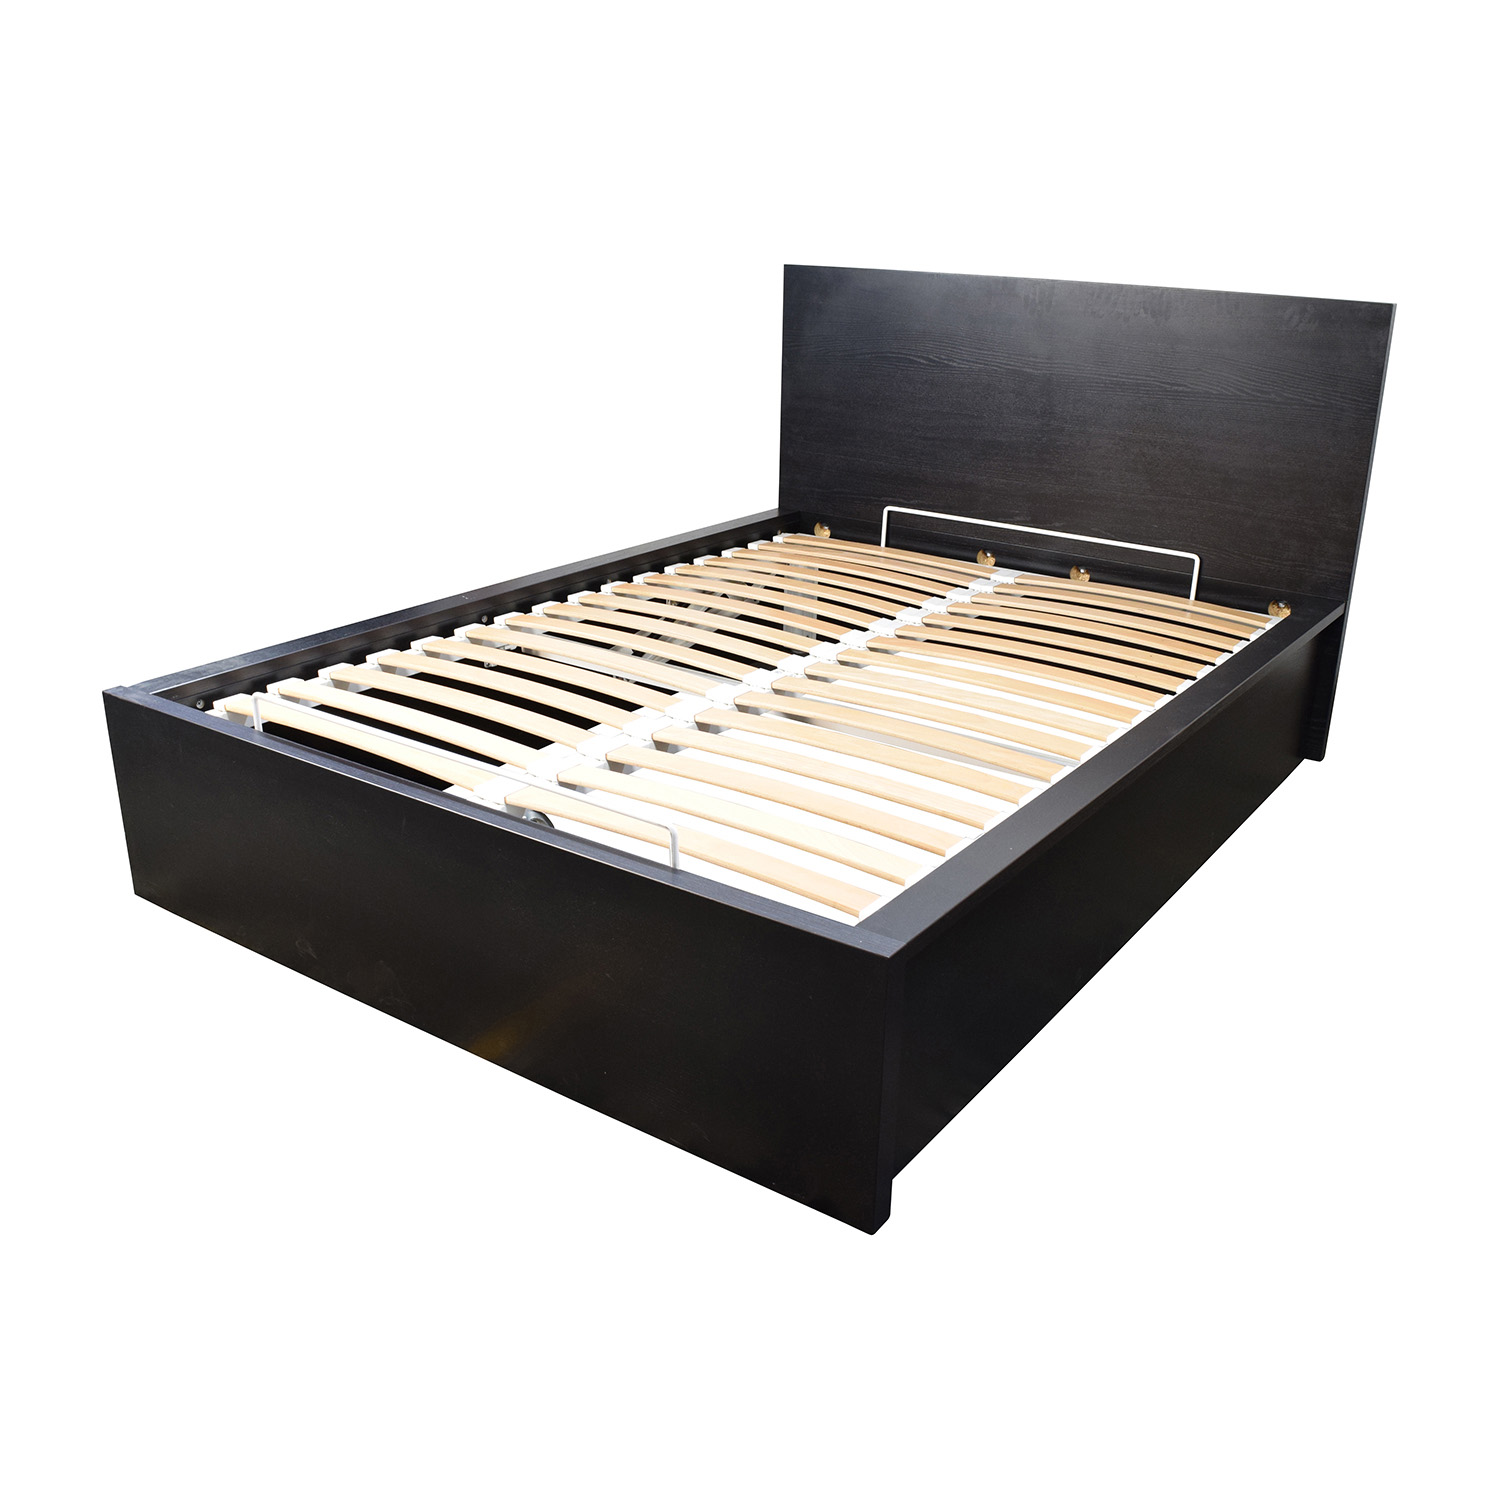 30 off ikea ikea full bed frame with storage beds for Full size bed ikea